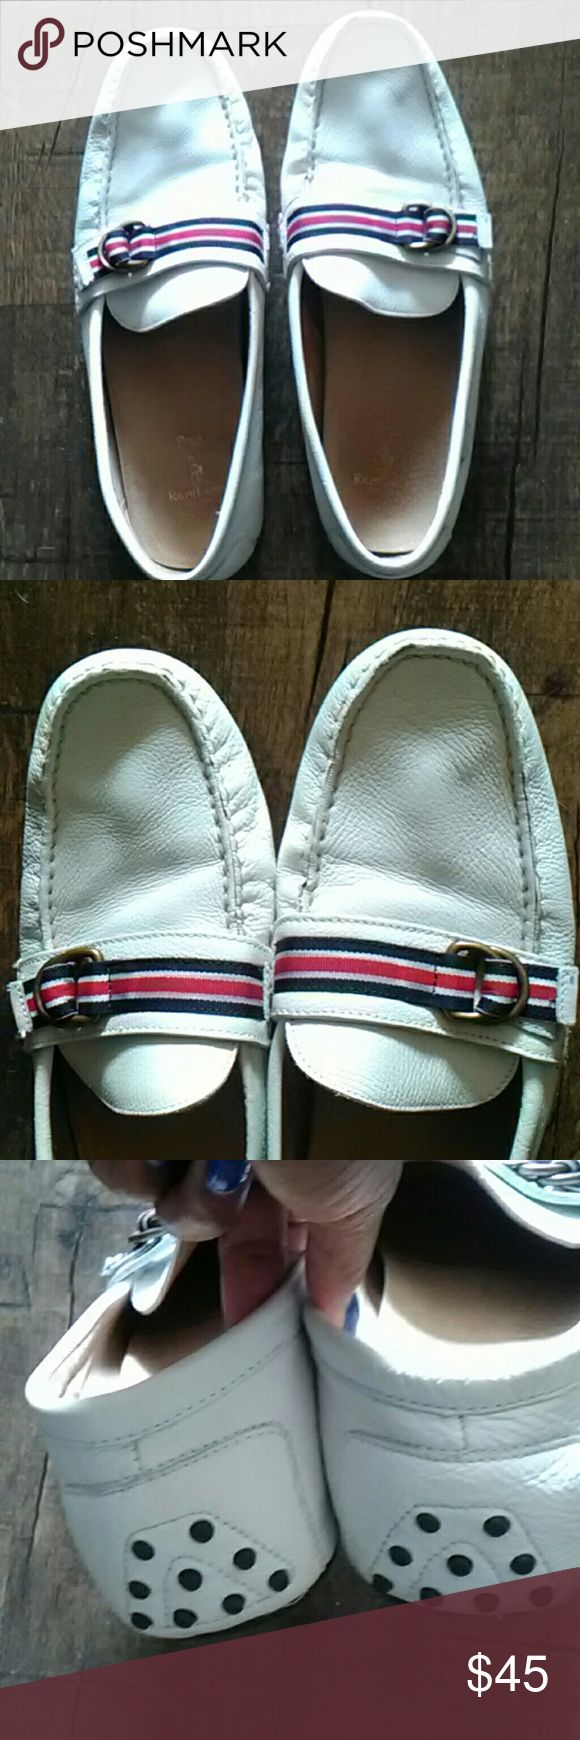 Polo Ralph Lauren Willem Men Loafers/Slip-Ons These shoes are in great condition with minor scuff. Polo by Ralph Lauren Shoes Loafers & Slip-Ons